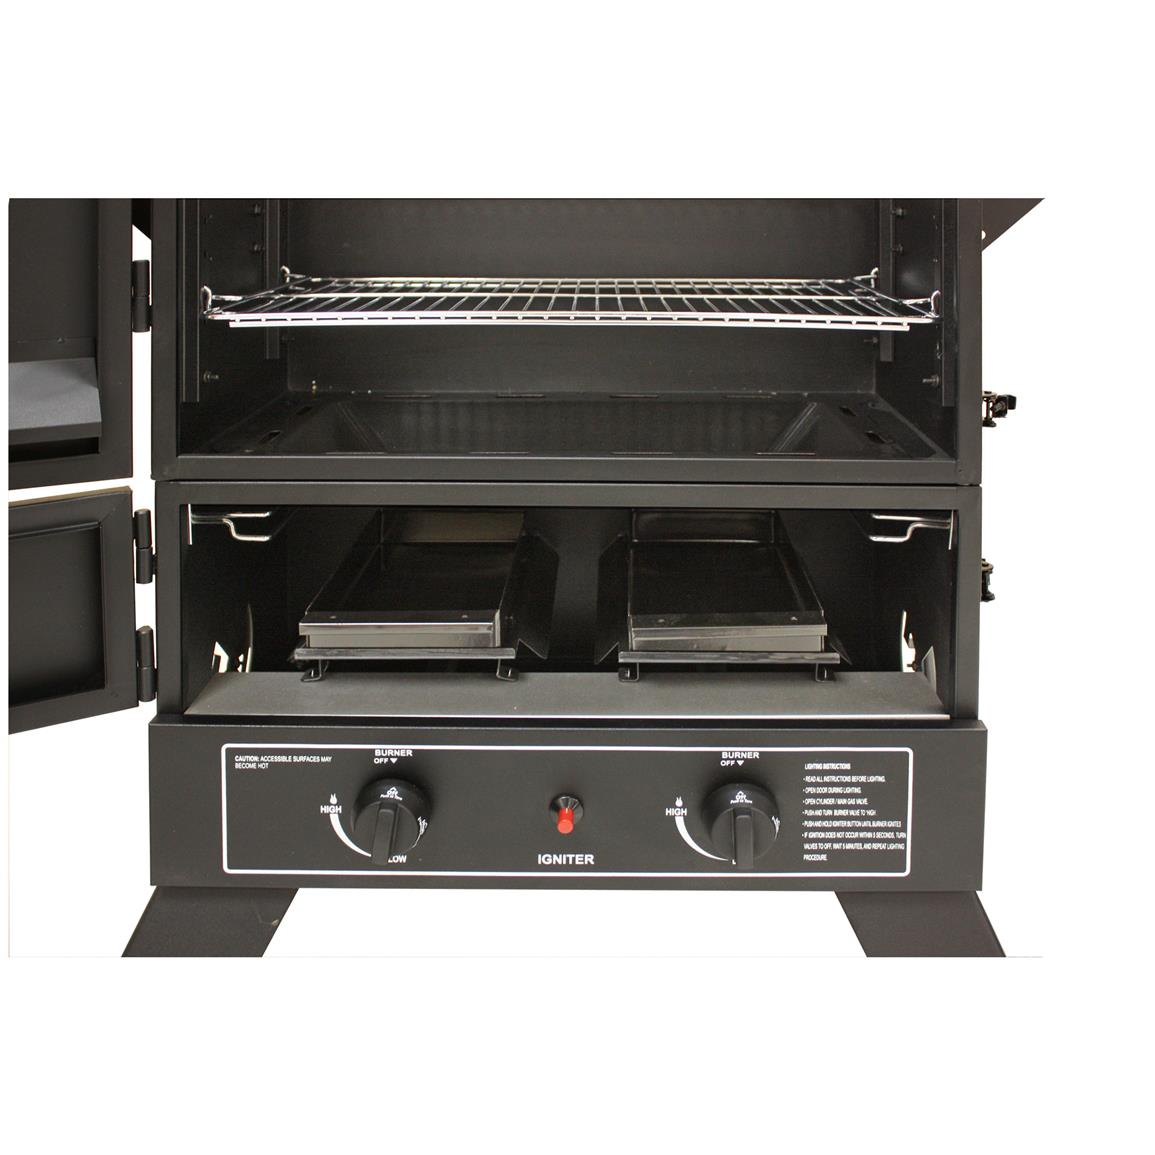 Dual, independently controlled stainless steel burners